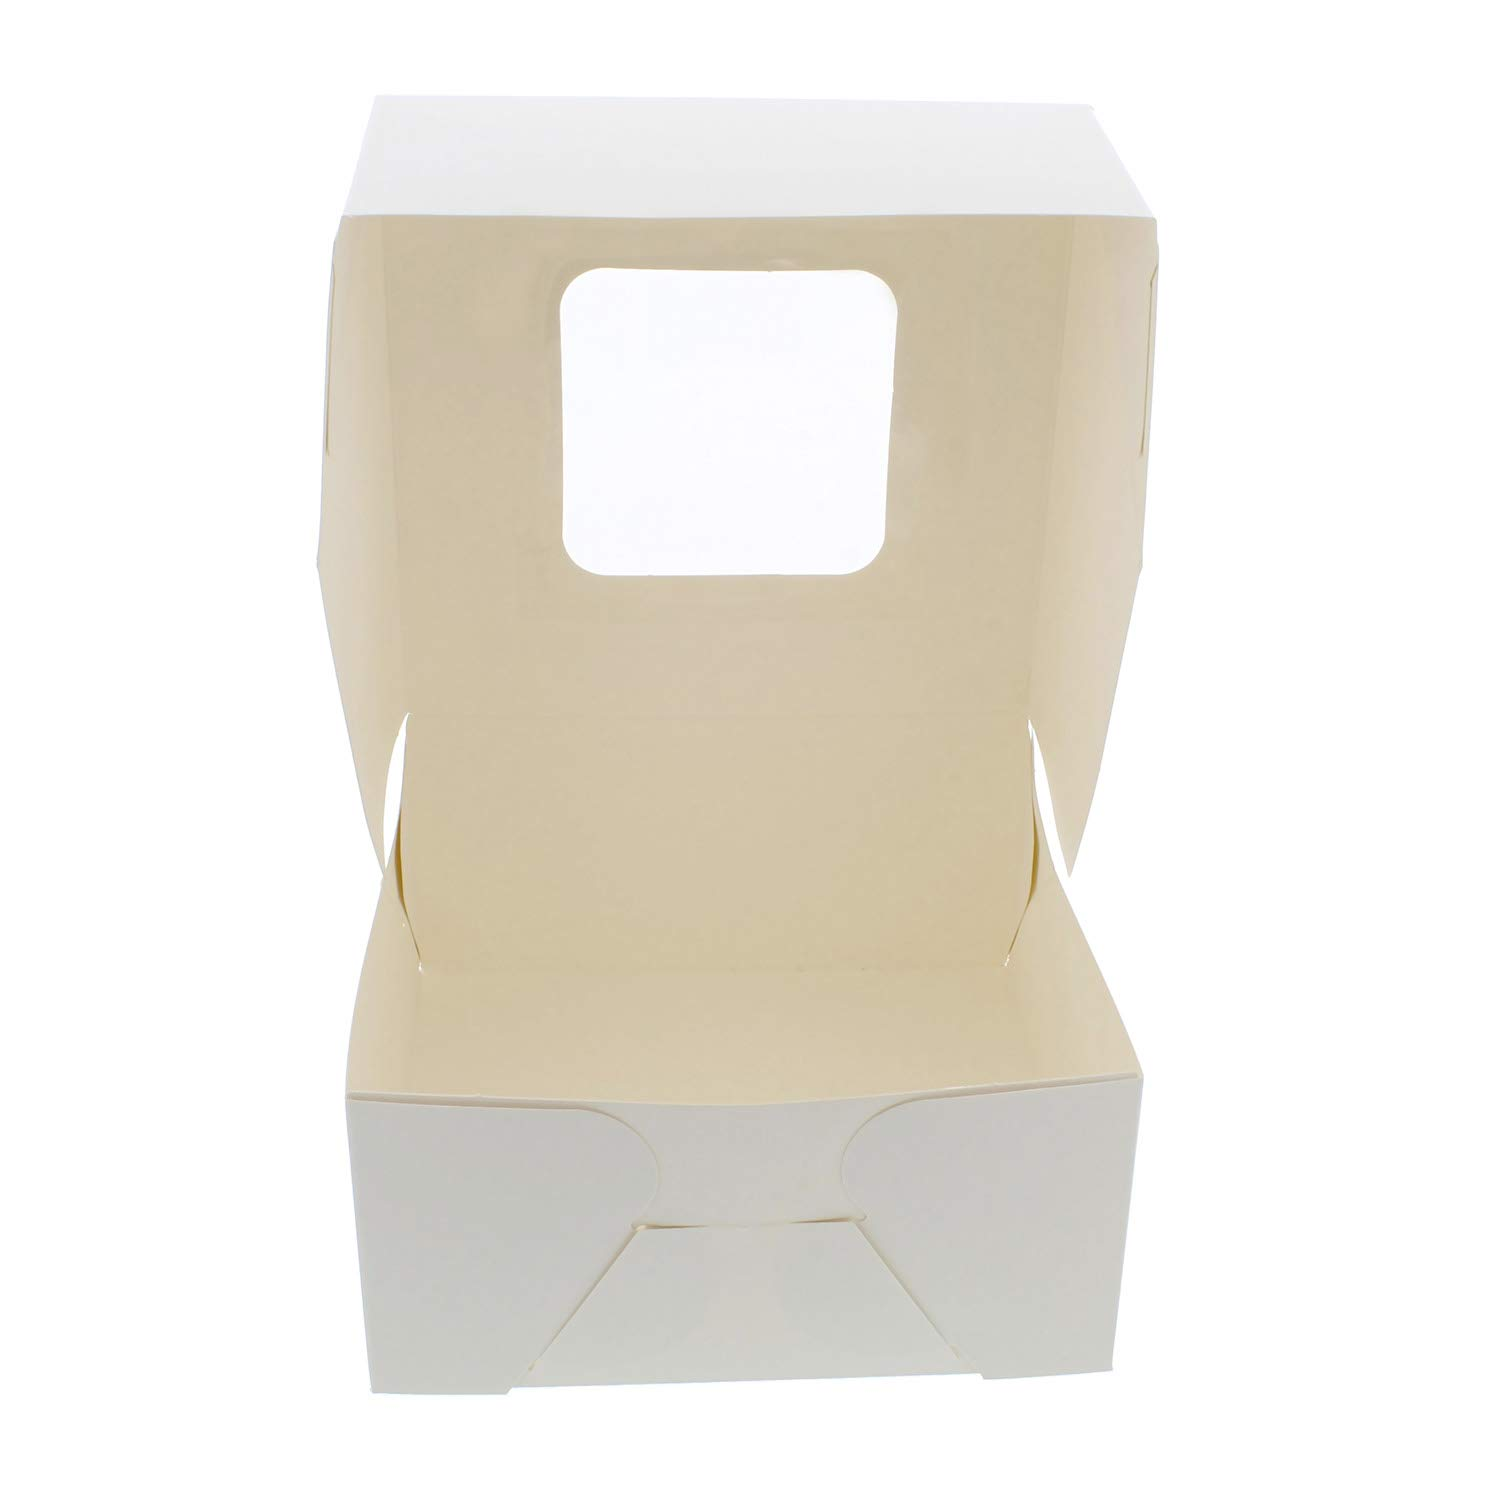 SpecialT White Bakery Boxes with Window, 200pk - 6'' x 6'' Inch Cake Boxes, Party Favor Boxes, Candy Boxes, Dessert Boxes by SpecialT (Image #2)